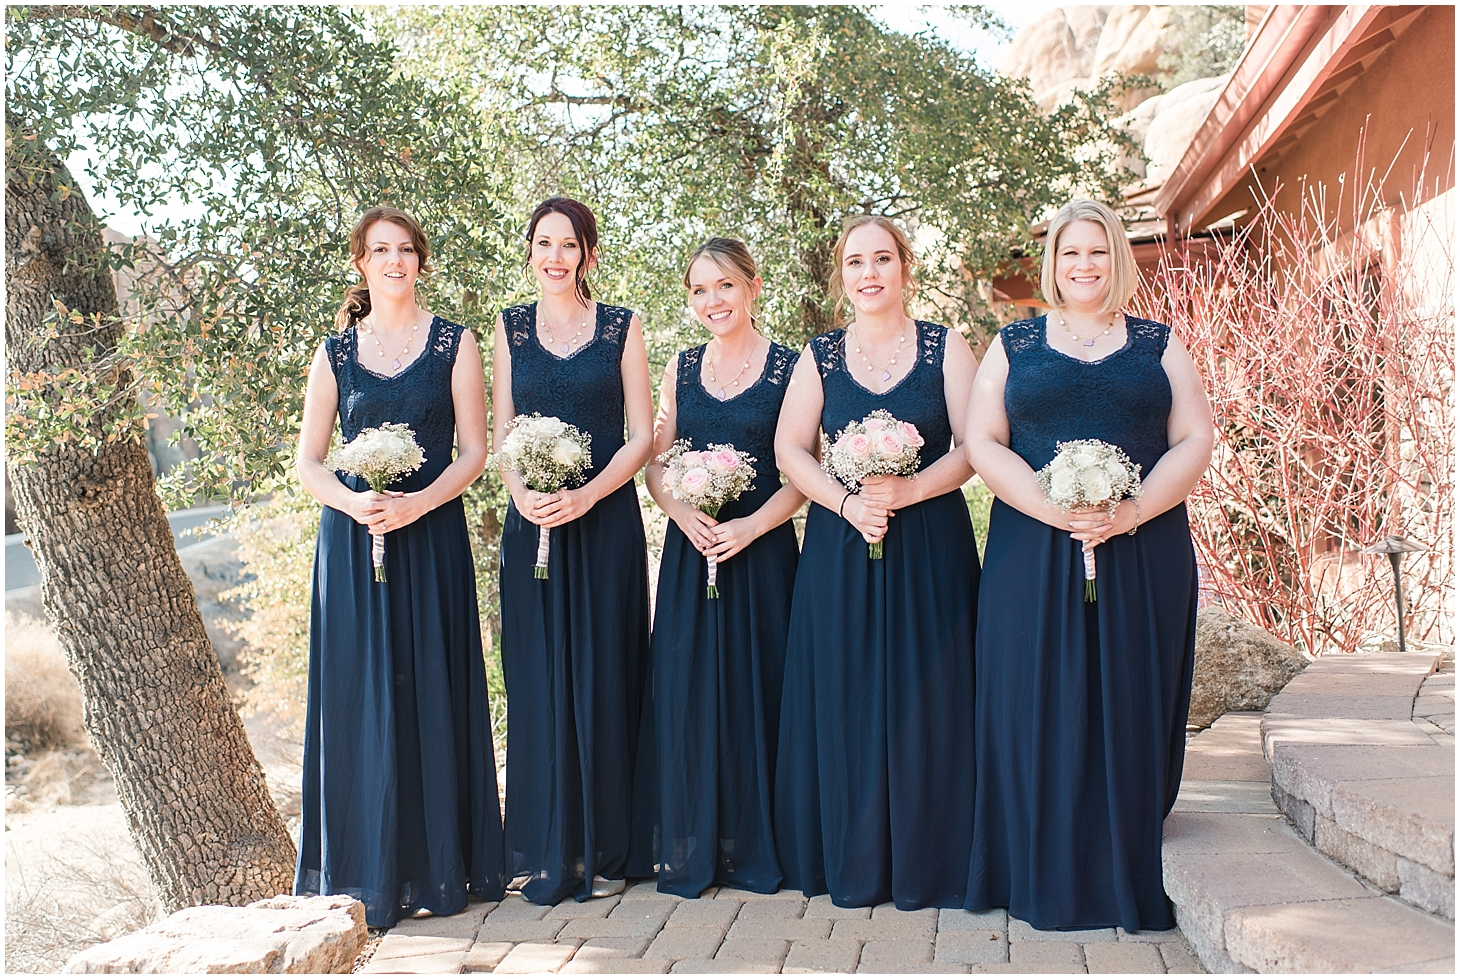 Bridesmaid portraits from Sarah and Brendan Rhodes Wedding in Prescott, Arizona. Photos by Jade Min Photography, based out of Gilbert, Arizona.